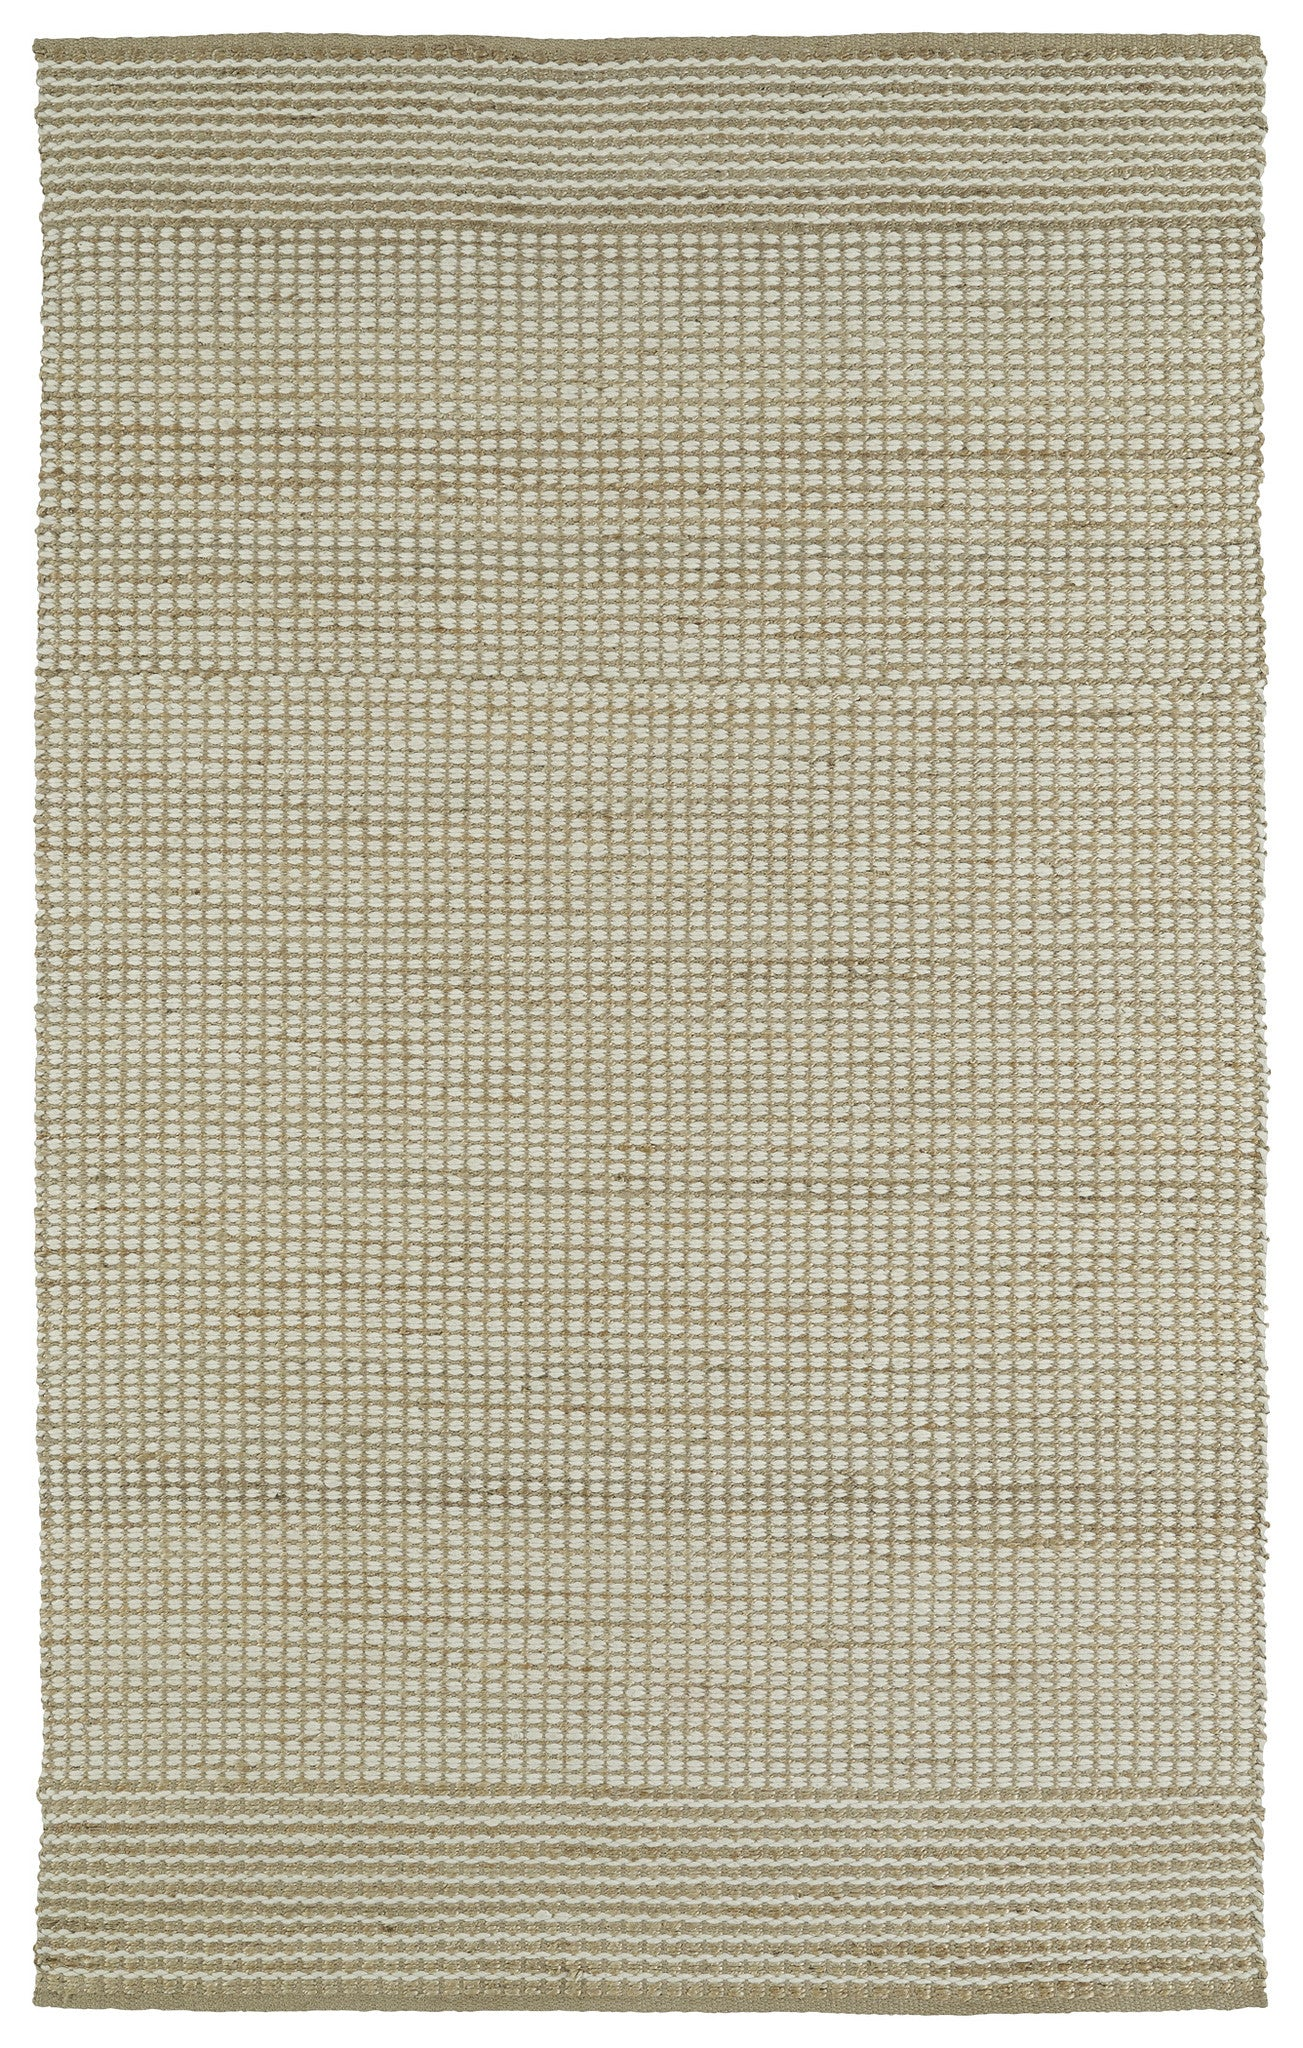 Kaleen Colinas COL01-01 Ivory Area Rug